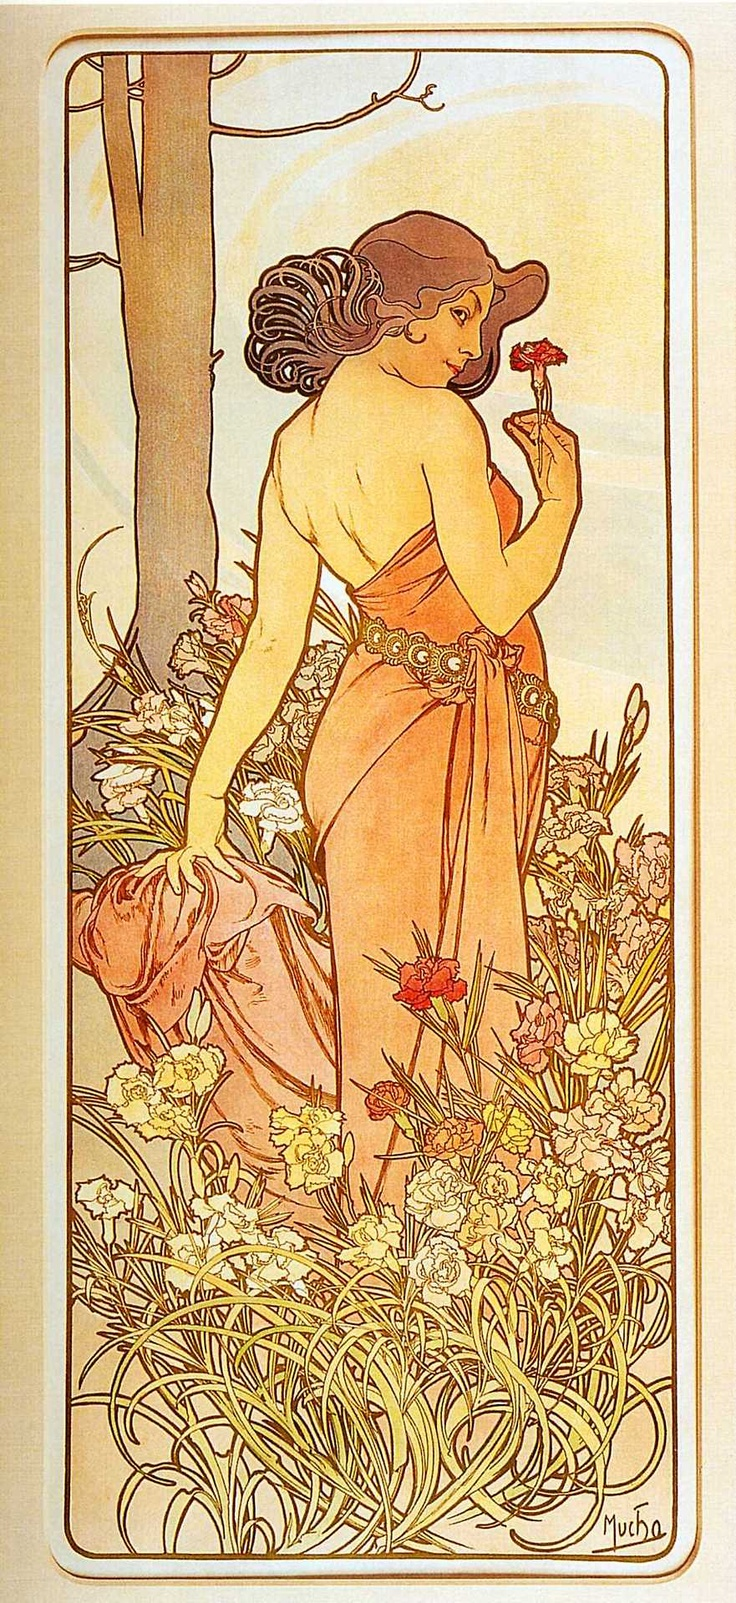 The way the flowers are painted in this one is perfect. [[CARNATION - The Flower Series, Alphonse Mucha, 1898]]